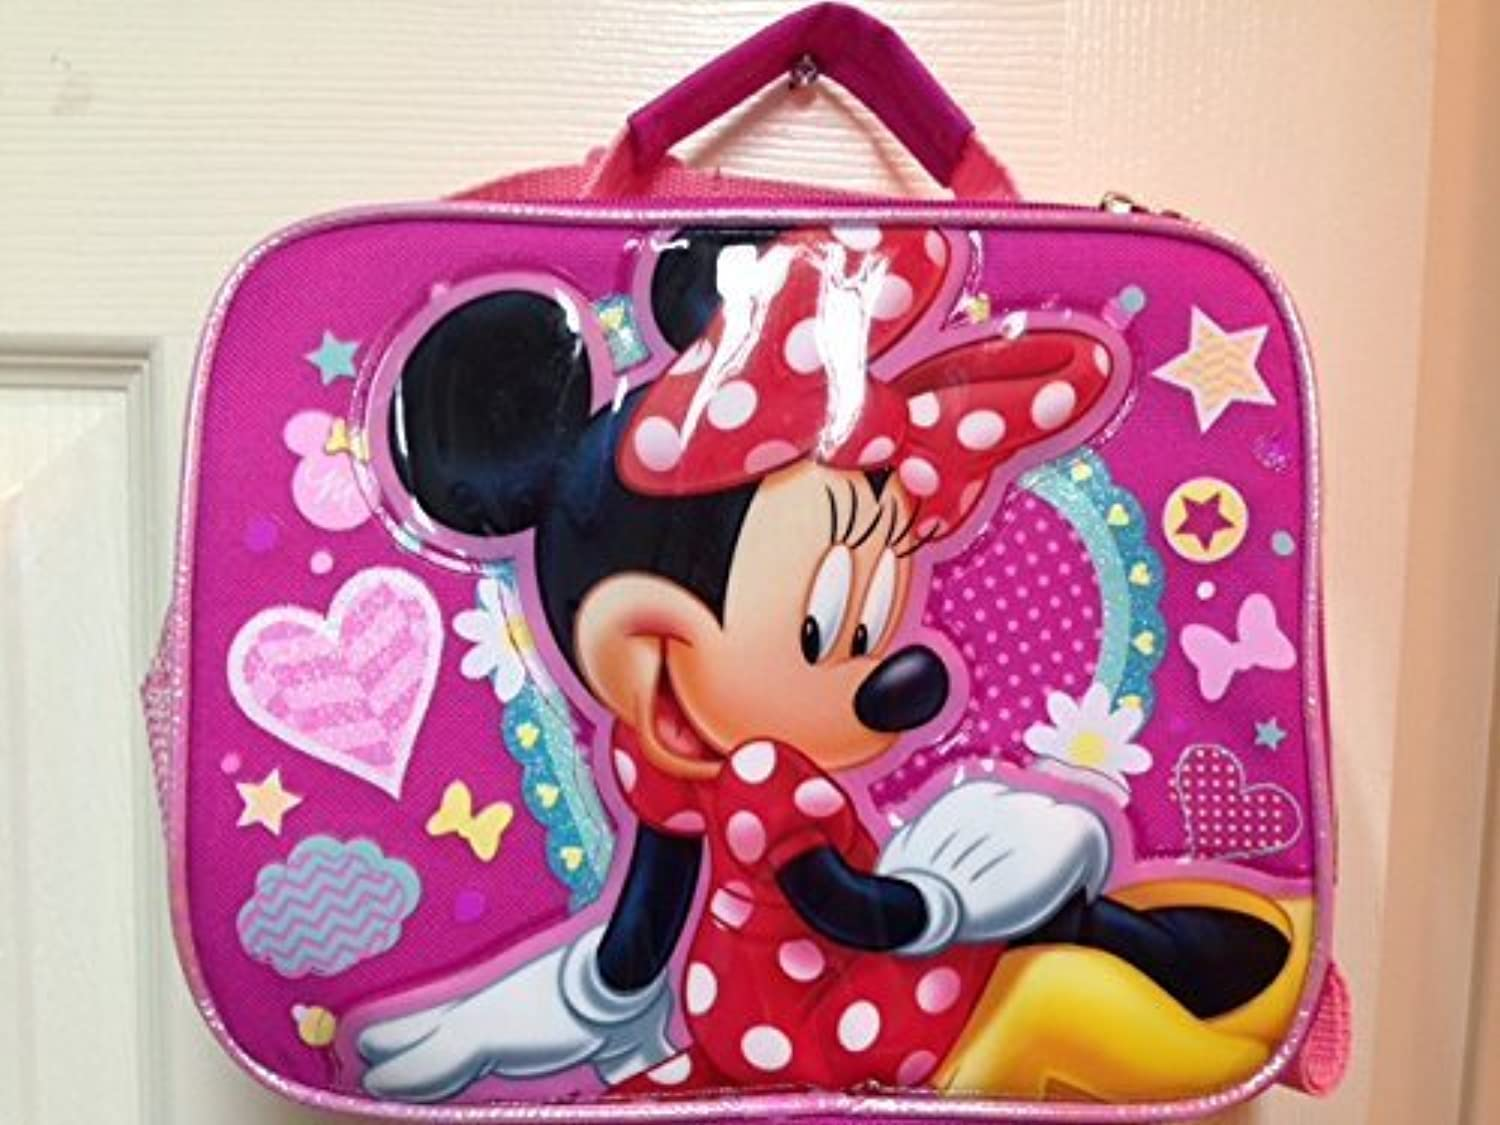 Esperando por ti Disney Disney Disney Minnie Mouse Lunch Box - BRAND NEW - Licensed Product by Ruz  ¡no ser extrañado!